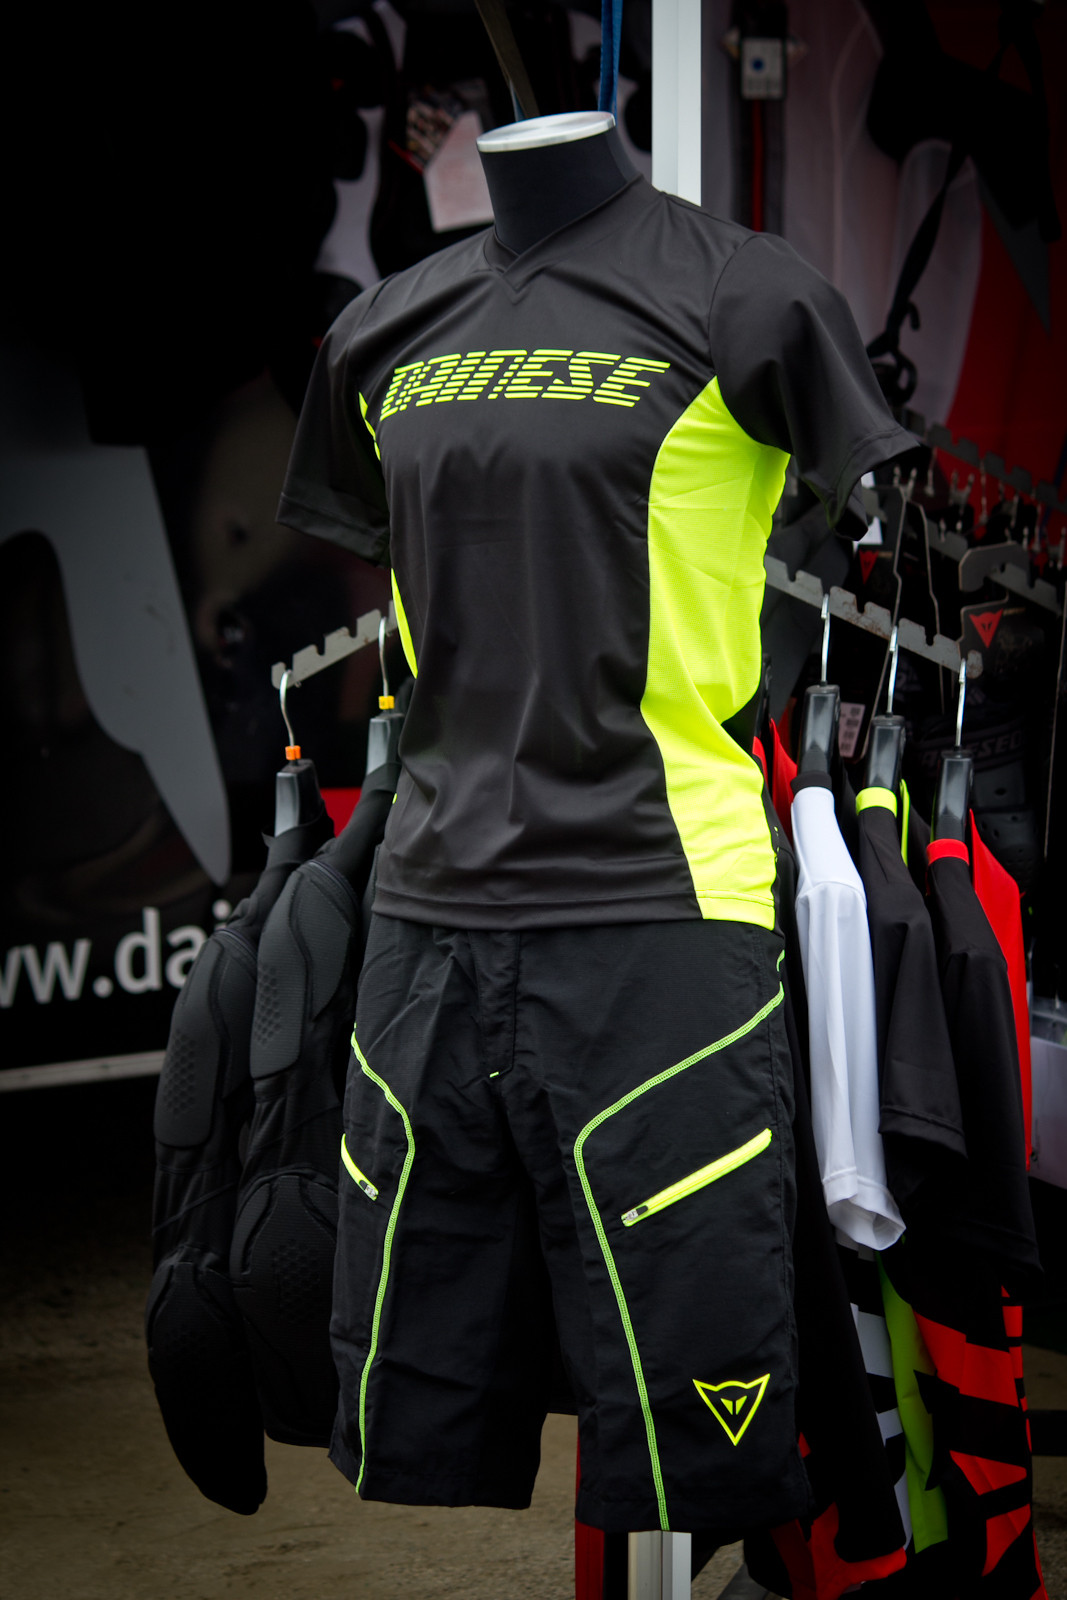 Dainese Drifter Shorts and Jersey - Sea Otter Classic - 2014 Sea Otter Classic Pit Bits - Final Edition - Mountain Biking Pictures - Vital MTB